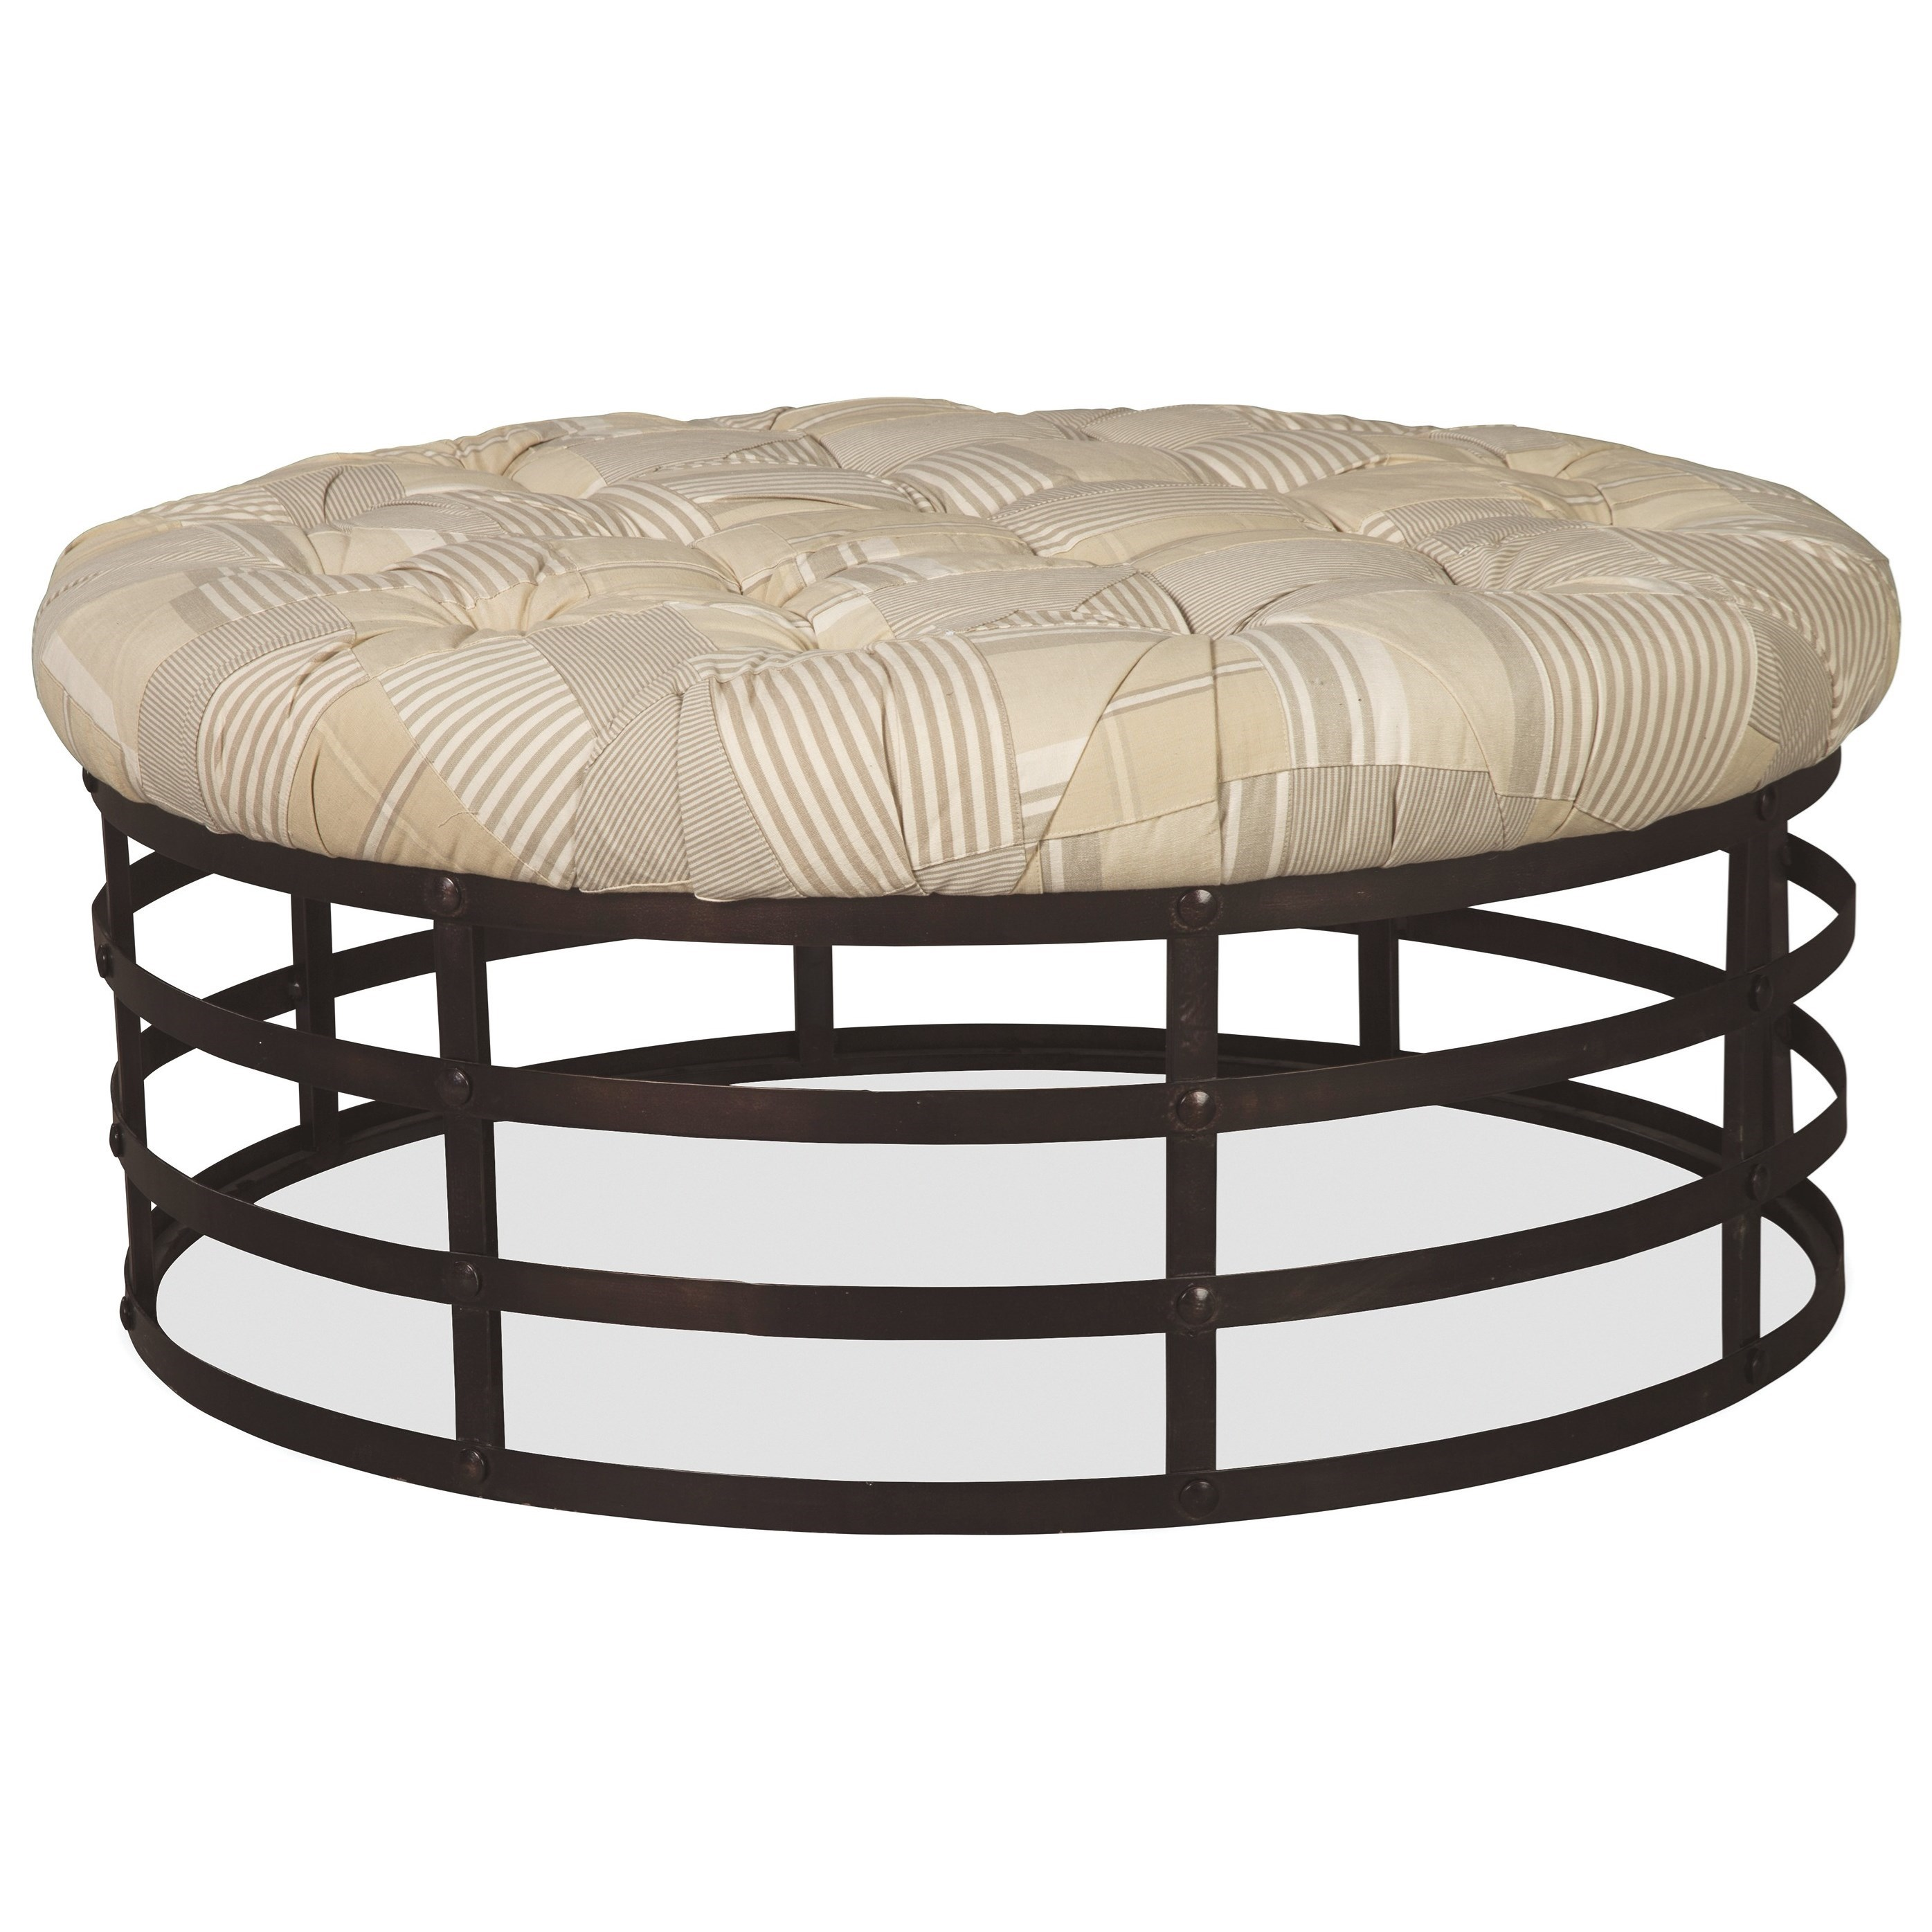 Sensational Round Cocktail Ottoman With Forged Steel Base And Button Short Links Chair Design For Home Short Linksinfo